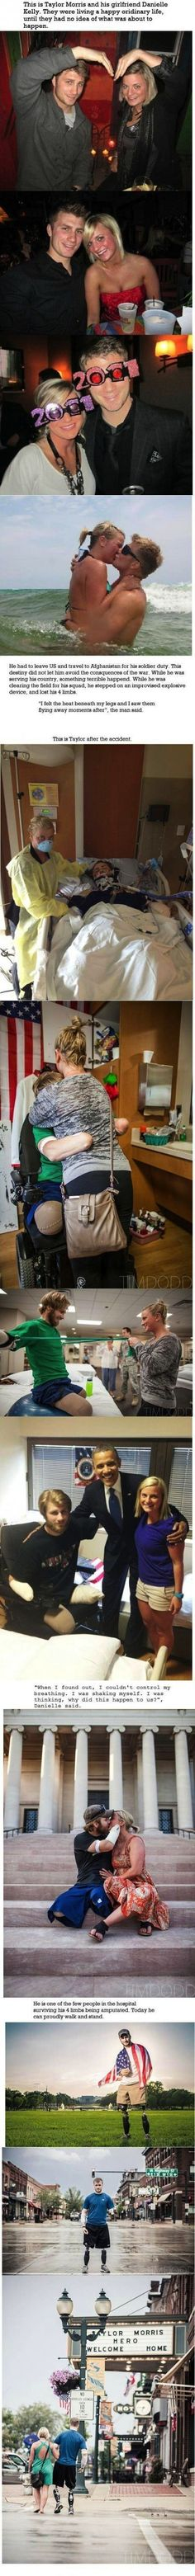 made me cry. beautiful heroism